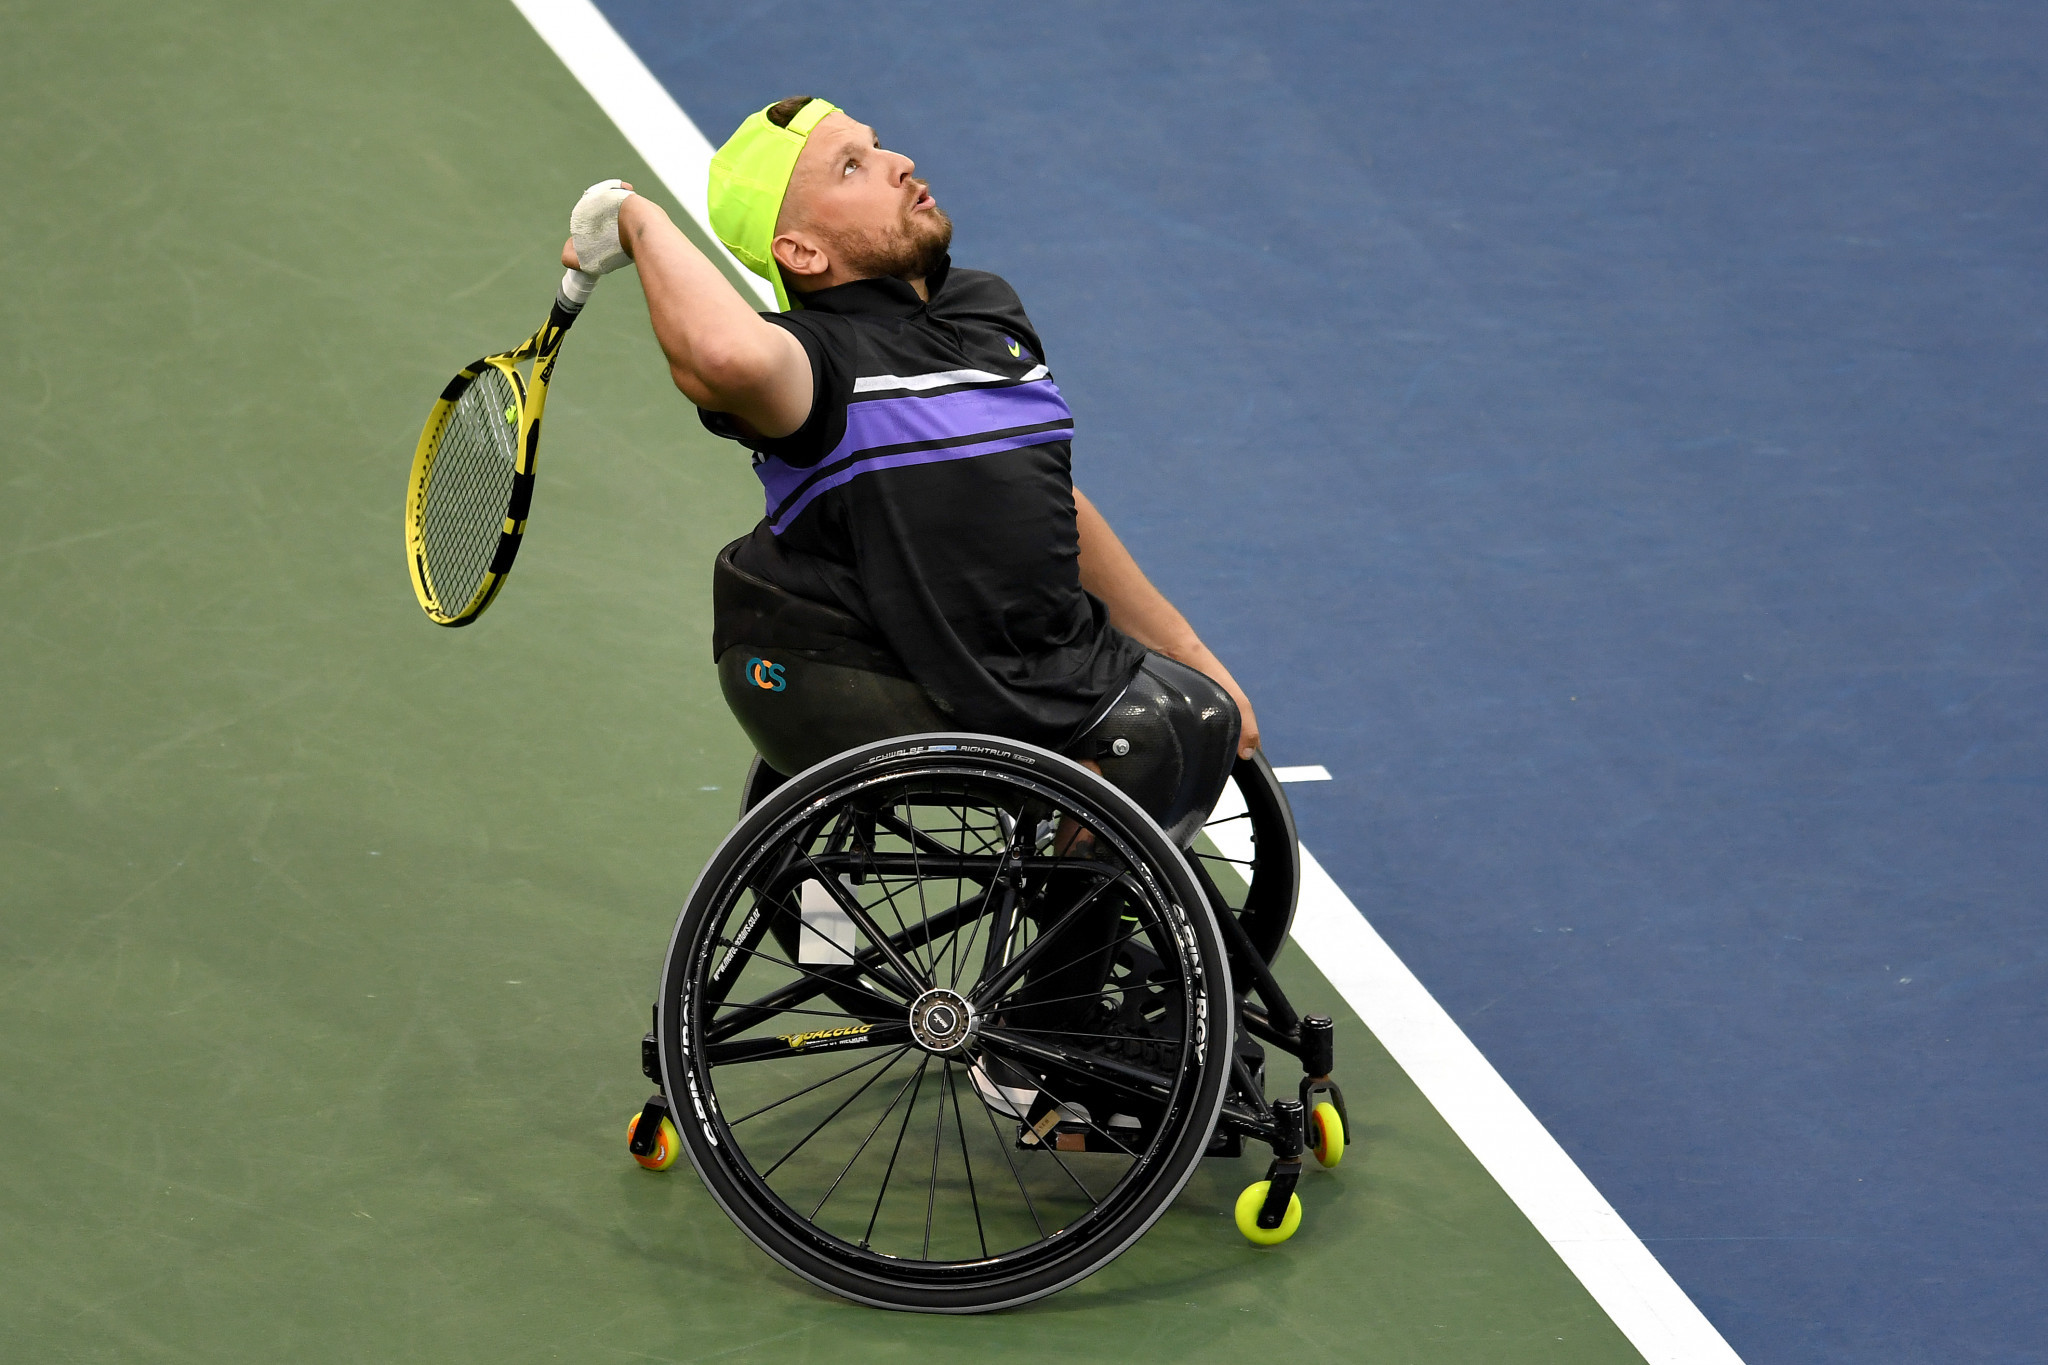 Australia's Dylan Alcott is in the hunt to win the first calendar Grand Slam in quad tennis history ©Getty Images